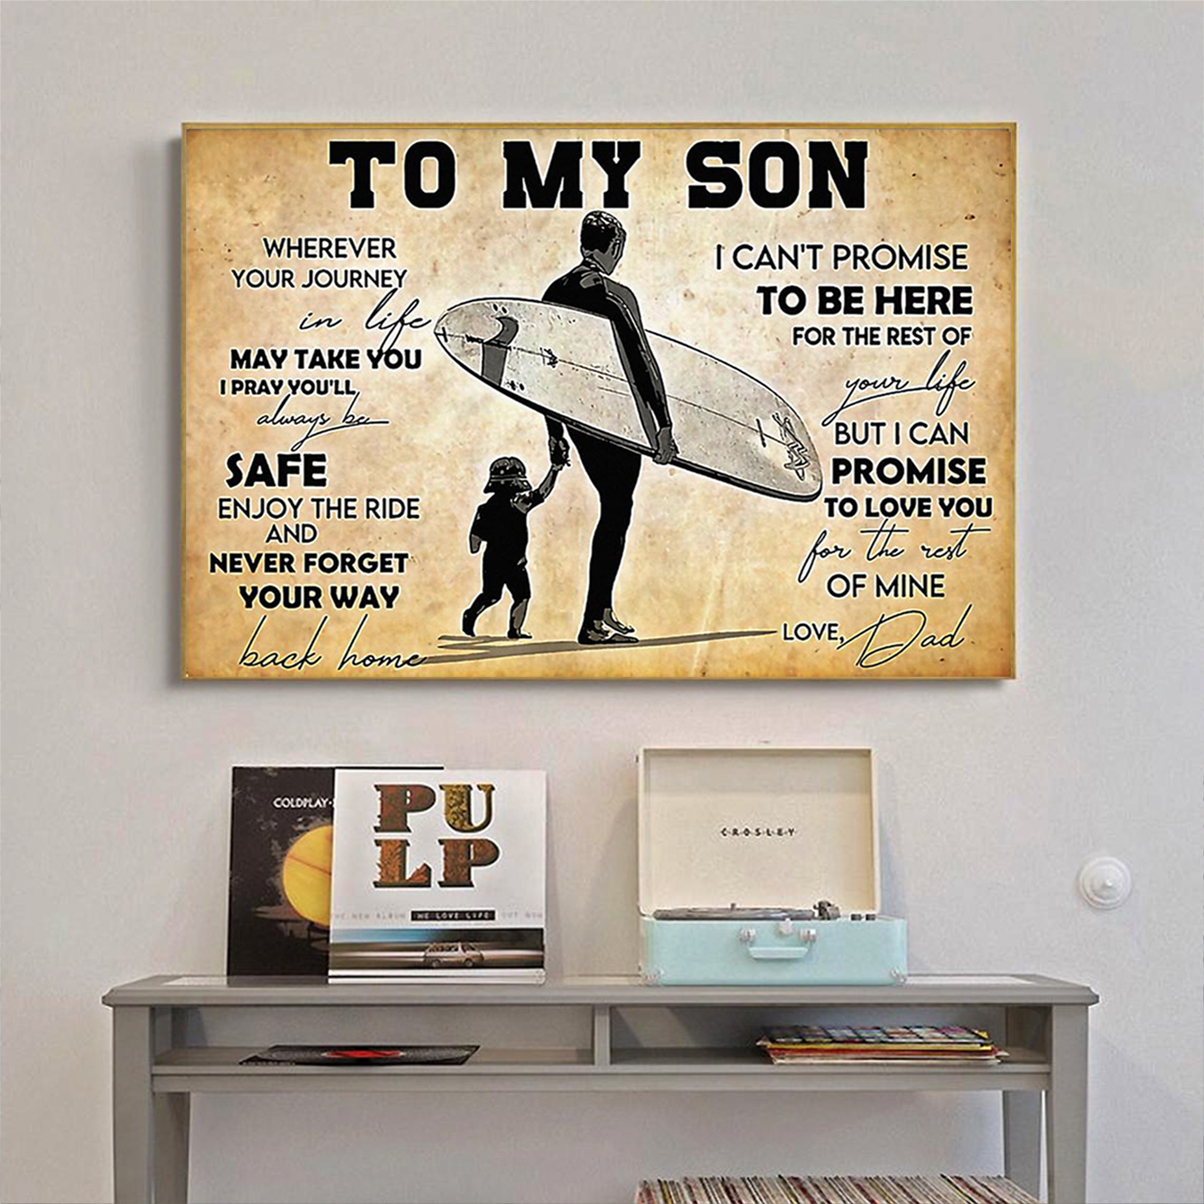 Surfing to my son dad poster A1